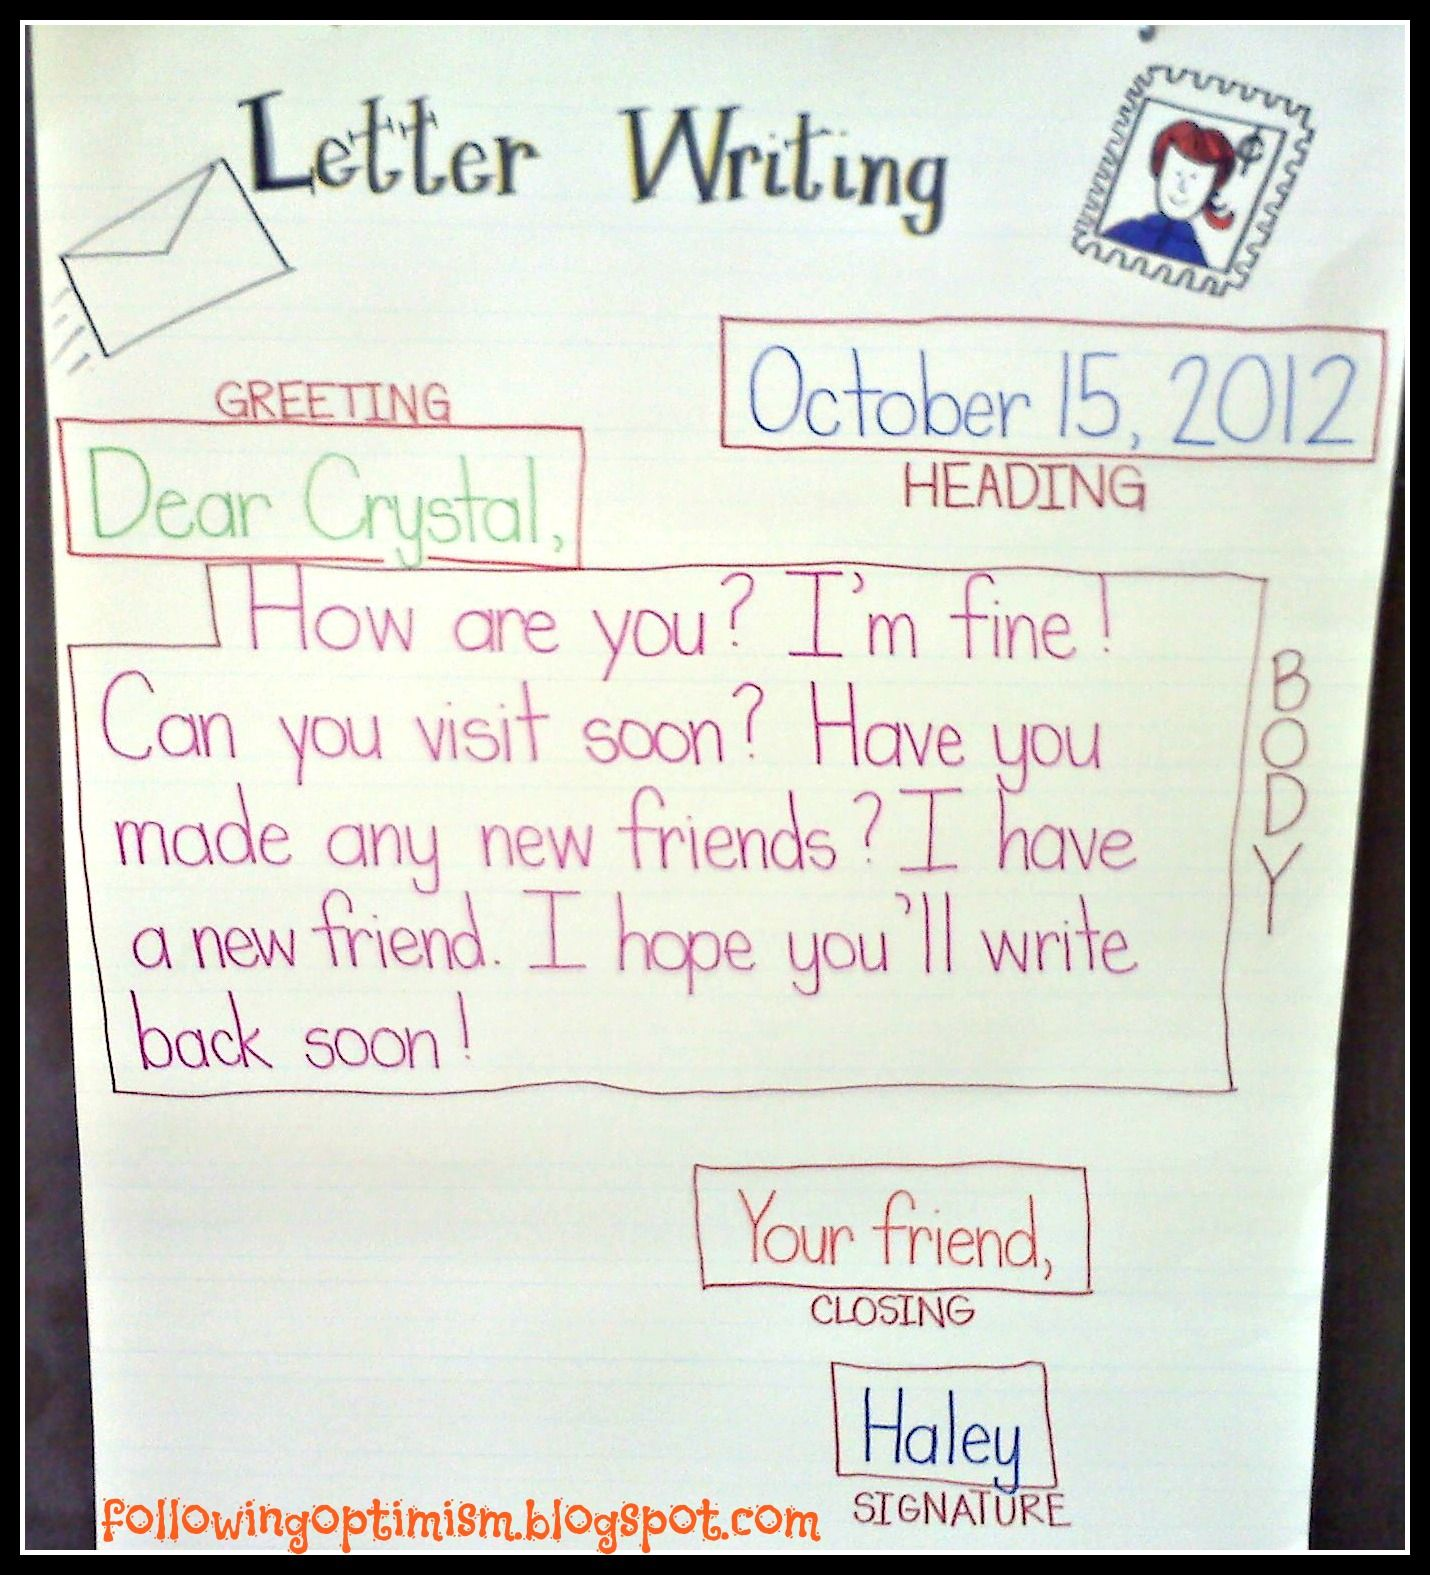 Written steps on how to properly write a letter